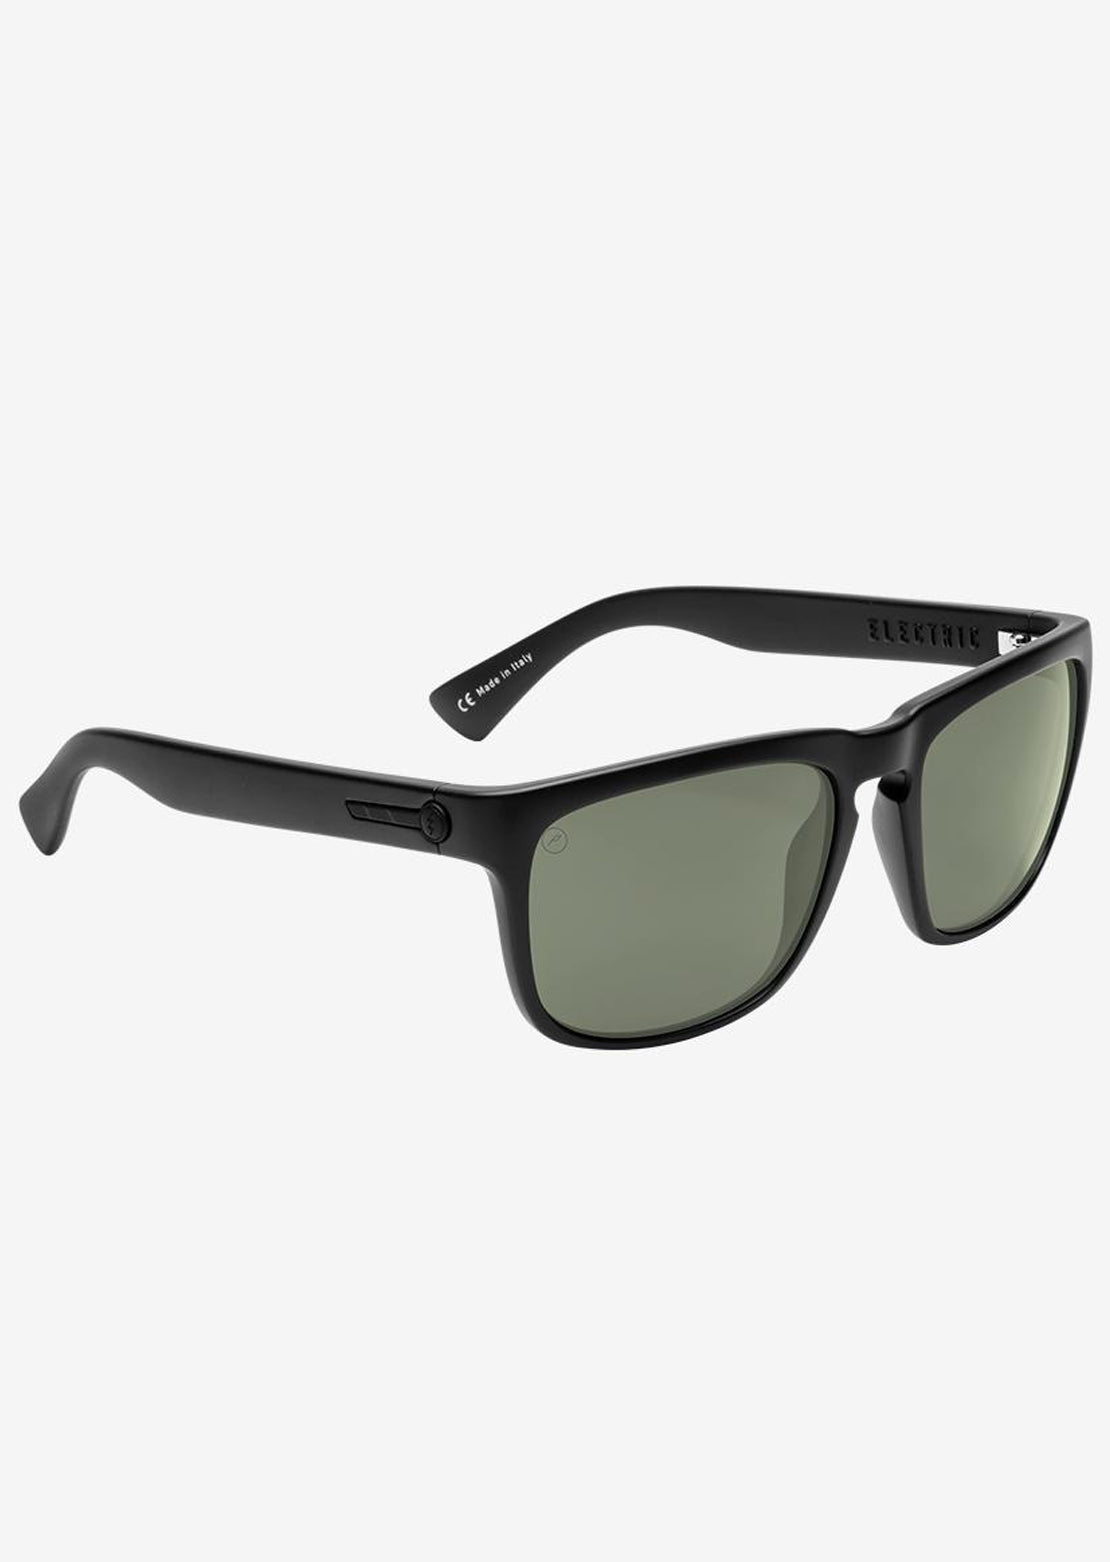 Electric Men's Knoxville Sunglasses Matte Black/Grey